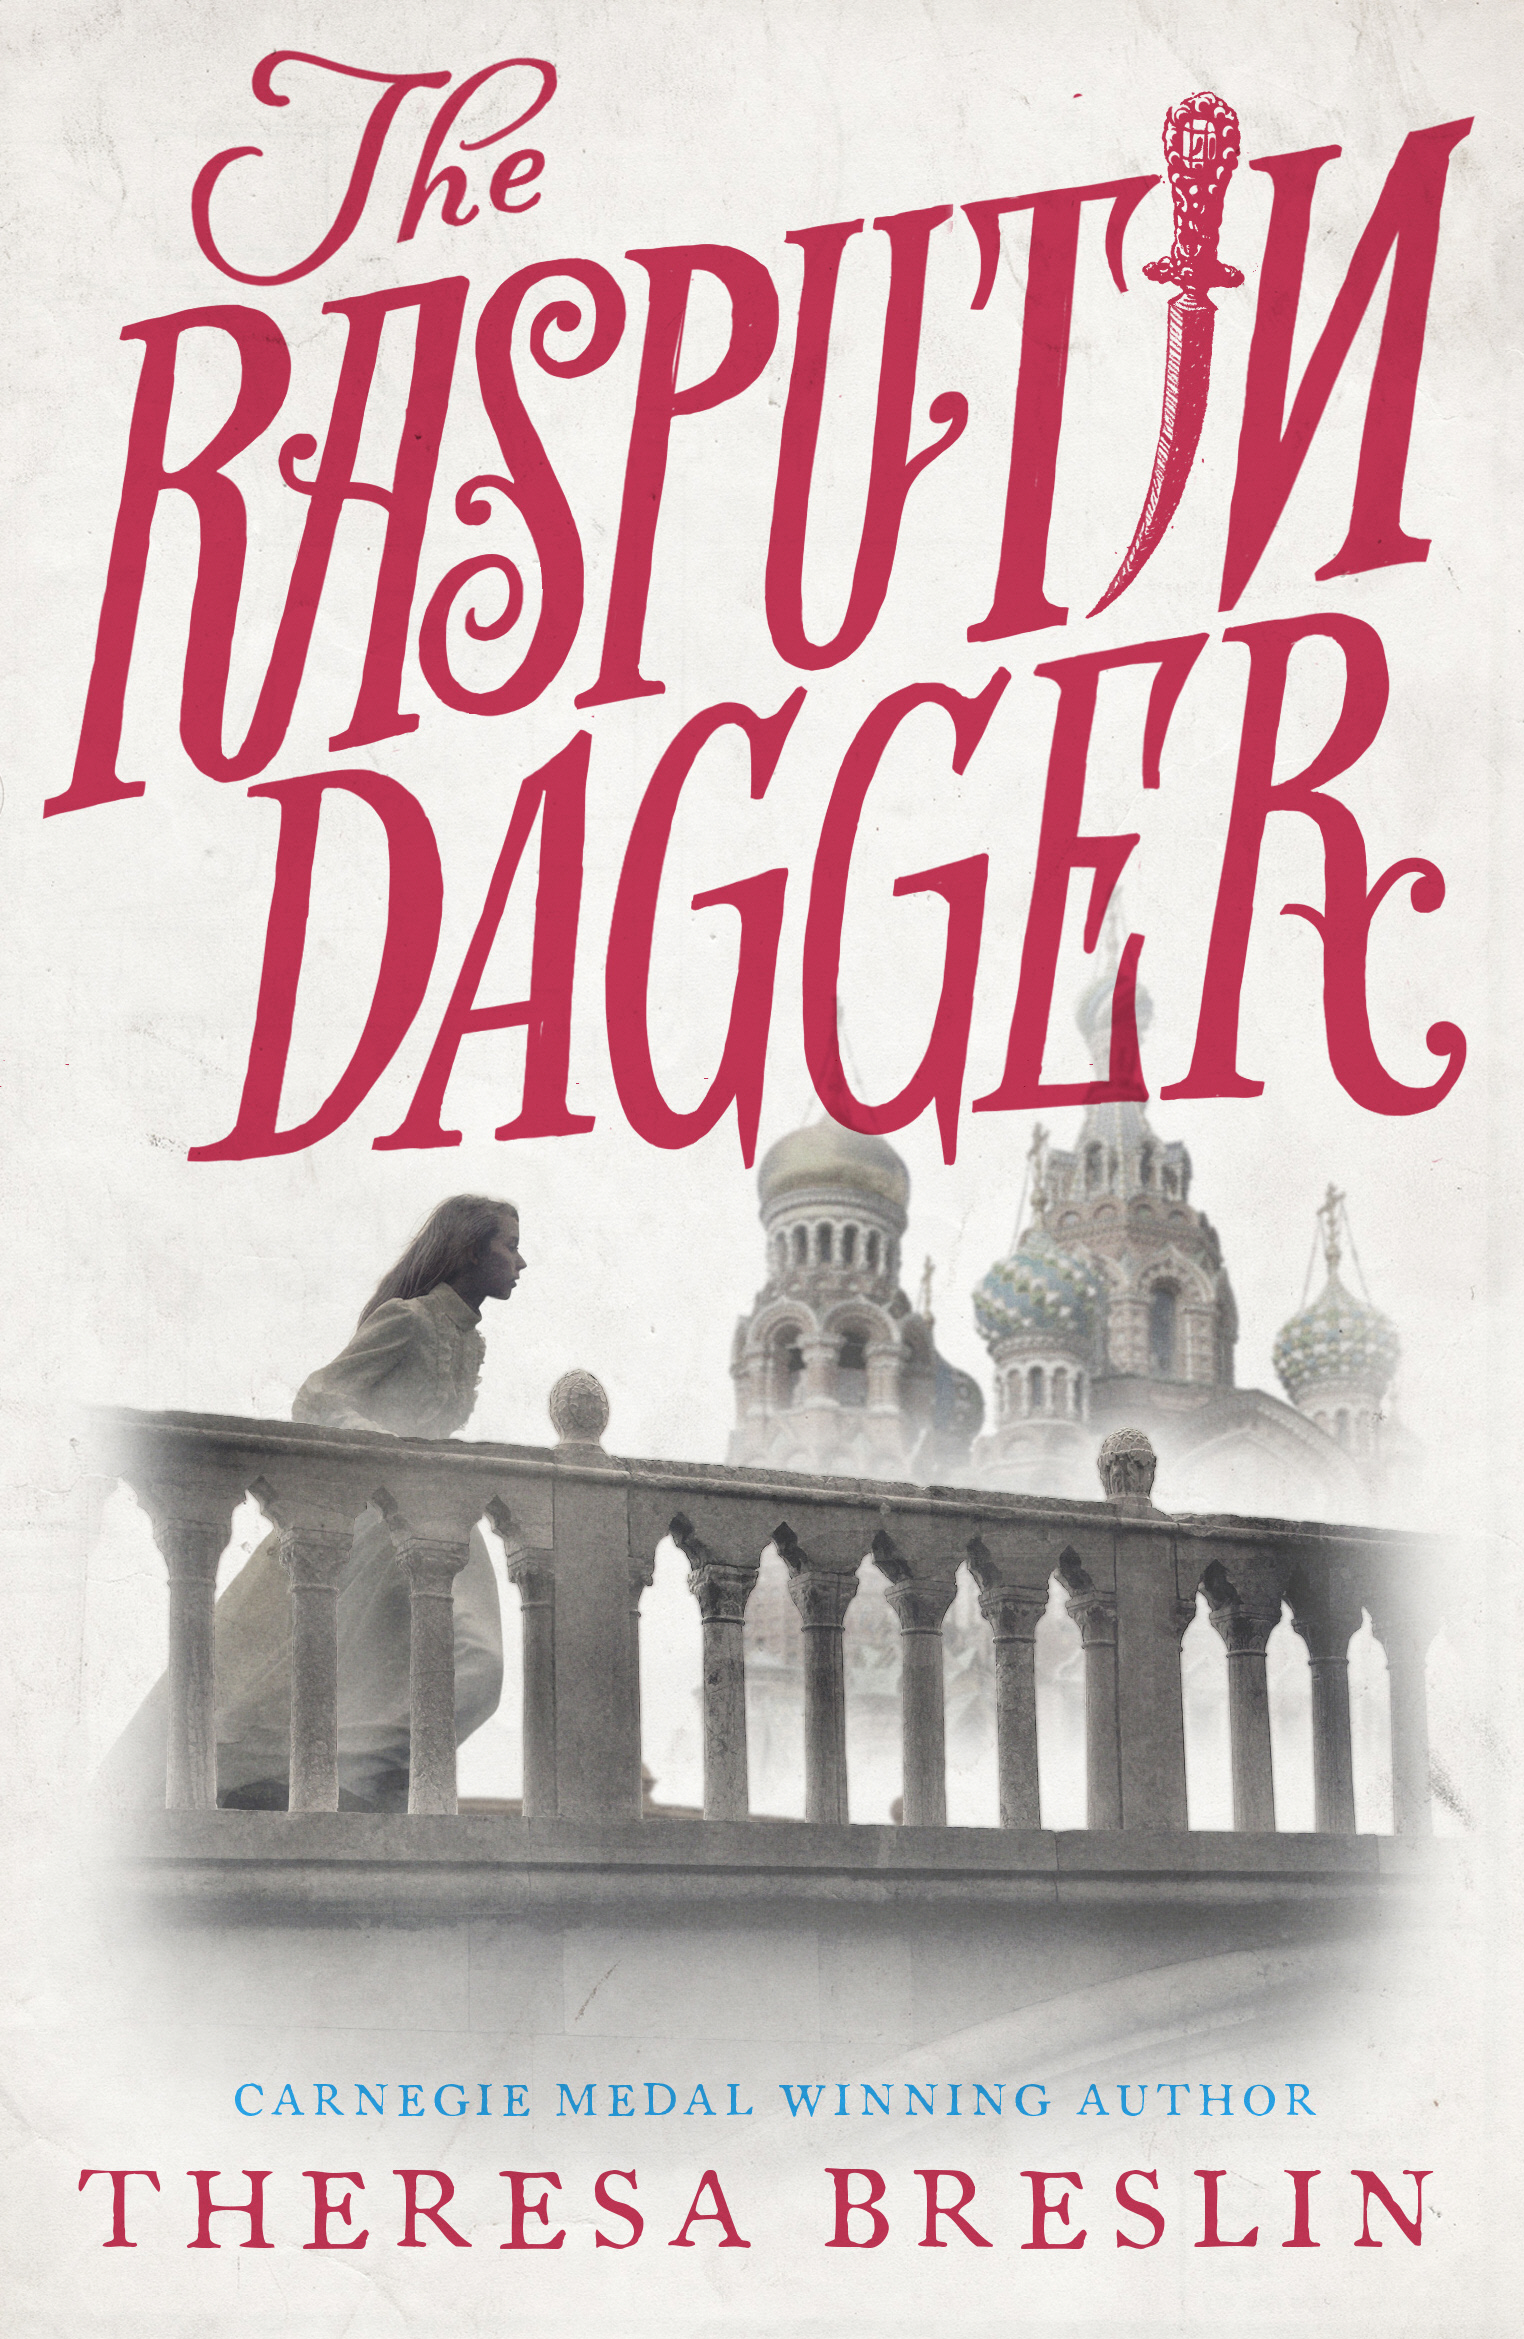 The Rasputin Dagger - Cover Reveal and Author's Thoughts